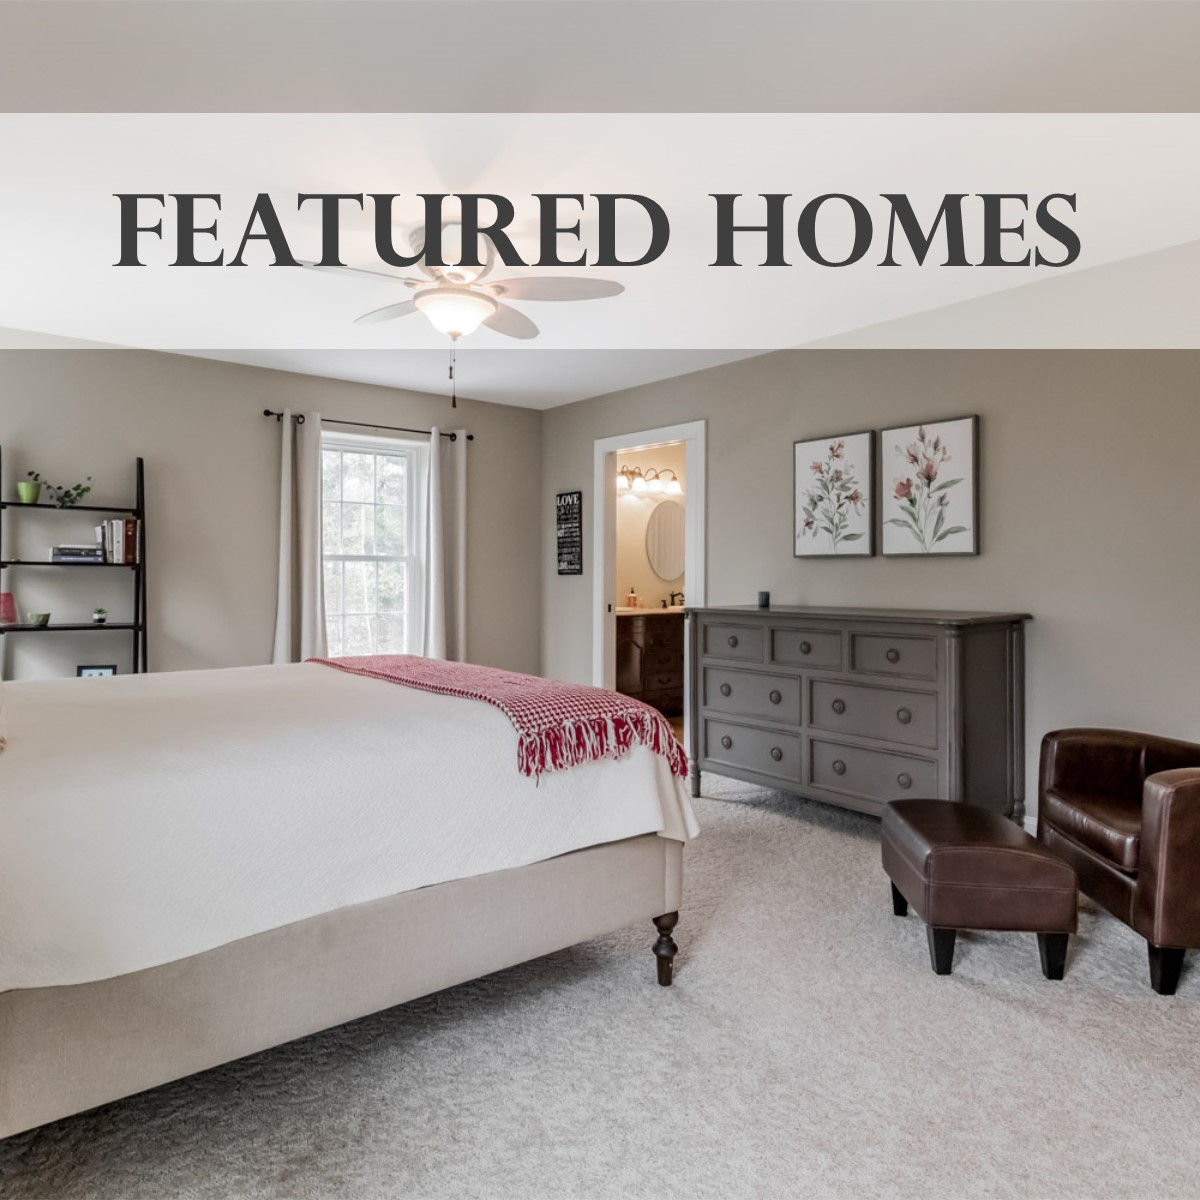 Just listed southern maine homes for sale - real estate leader, maine homes for sale, maine real estate, maine realtors, fontain